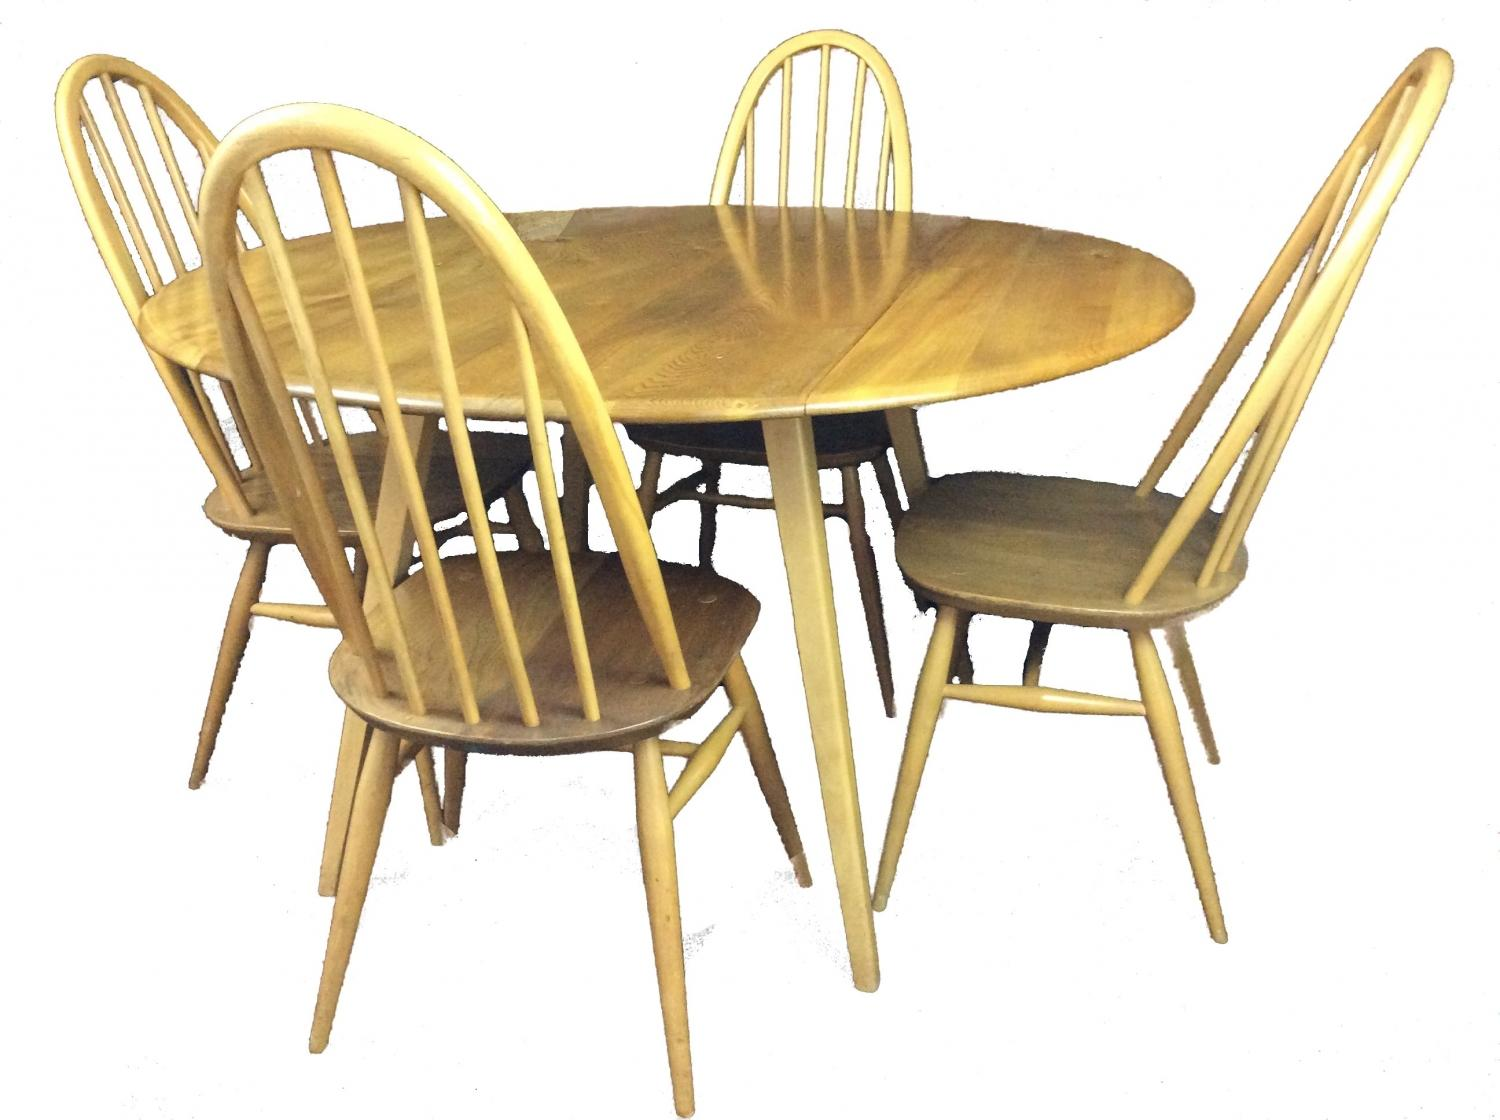 Ercol Dropleaf Dining Table And Chairs In Sold Recently